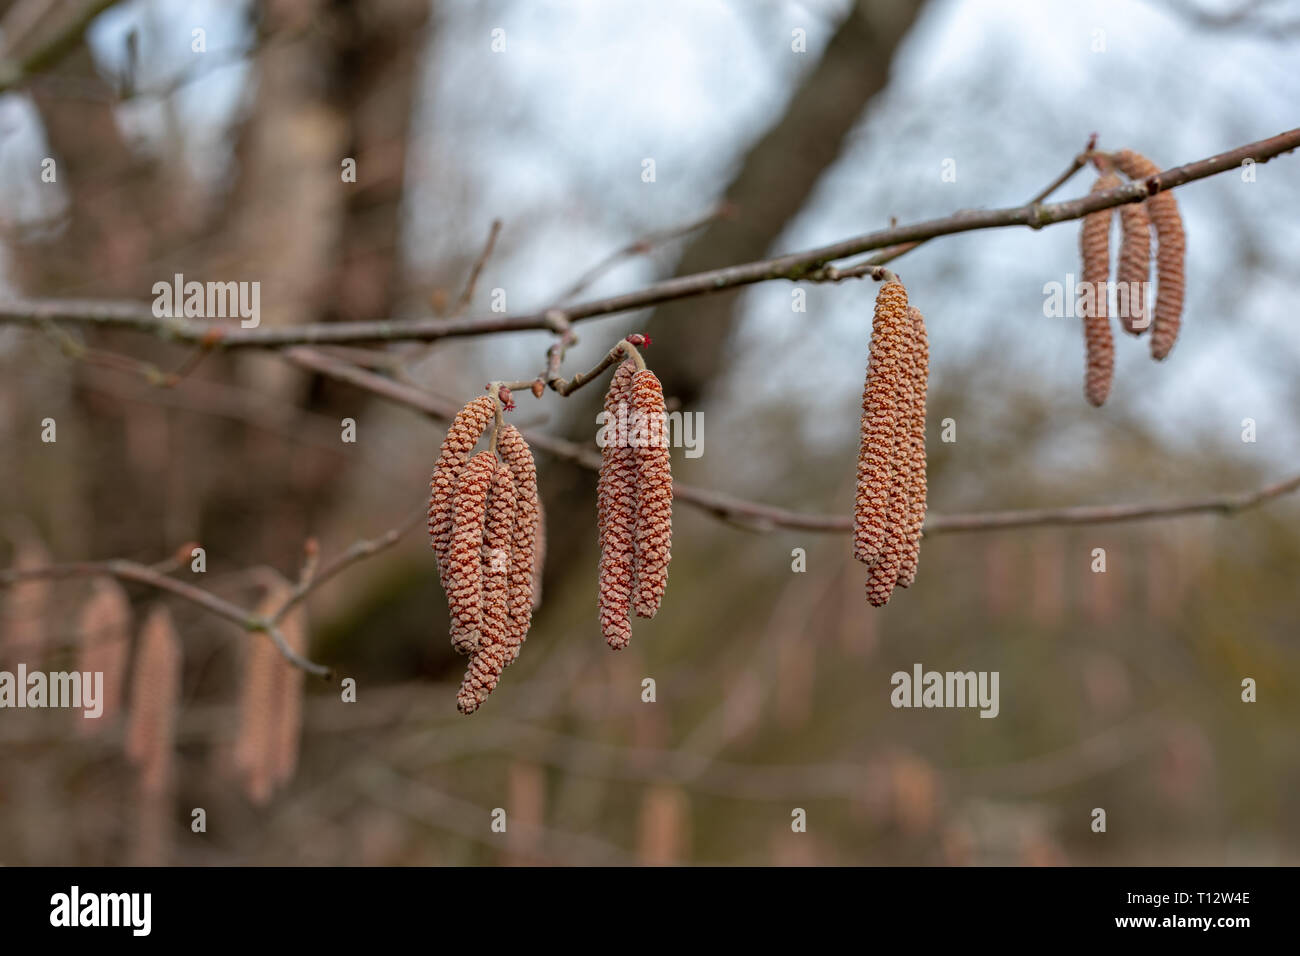 male catkins on a common hazel tree Latin corylus avellana from the birch family or betulaceae the fruit is the hazelnut in winter in the marshes or p - Stock Image